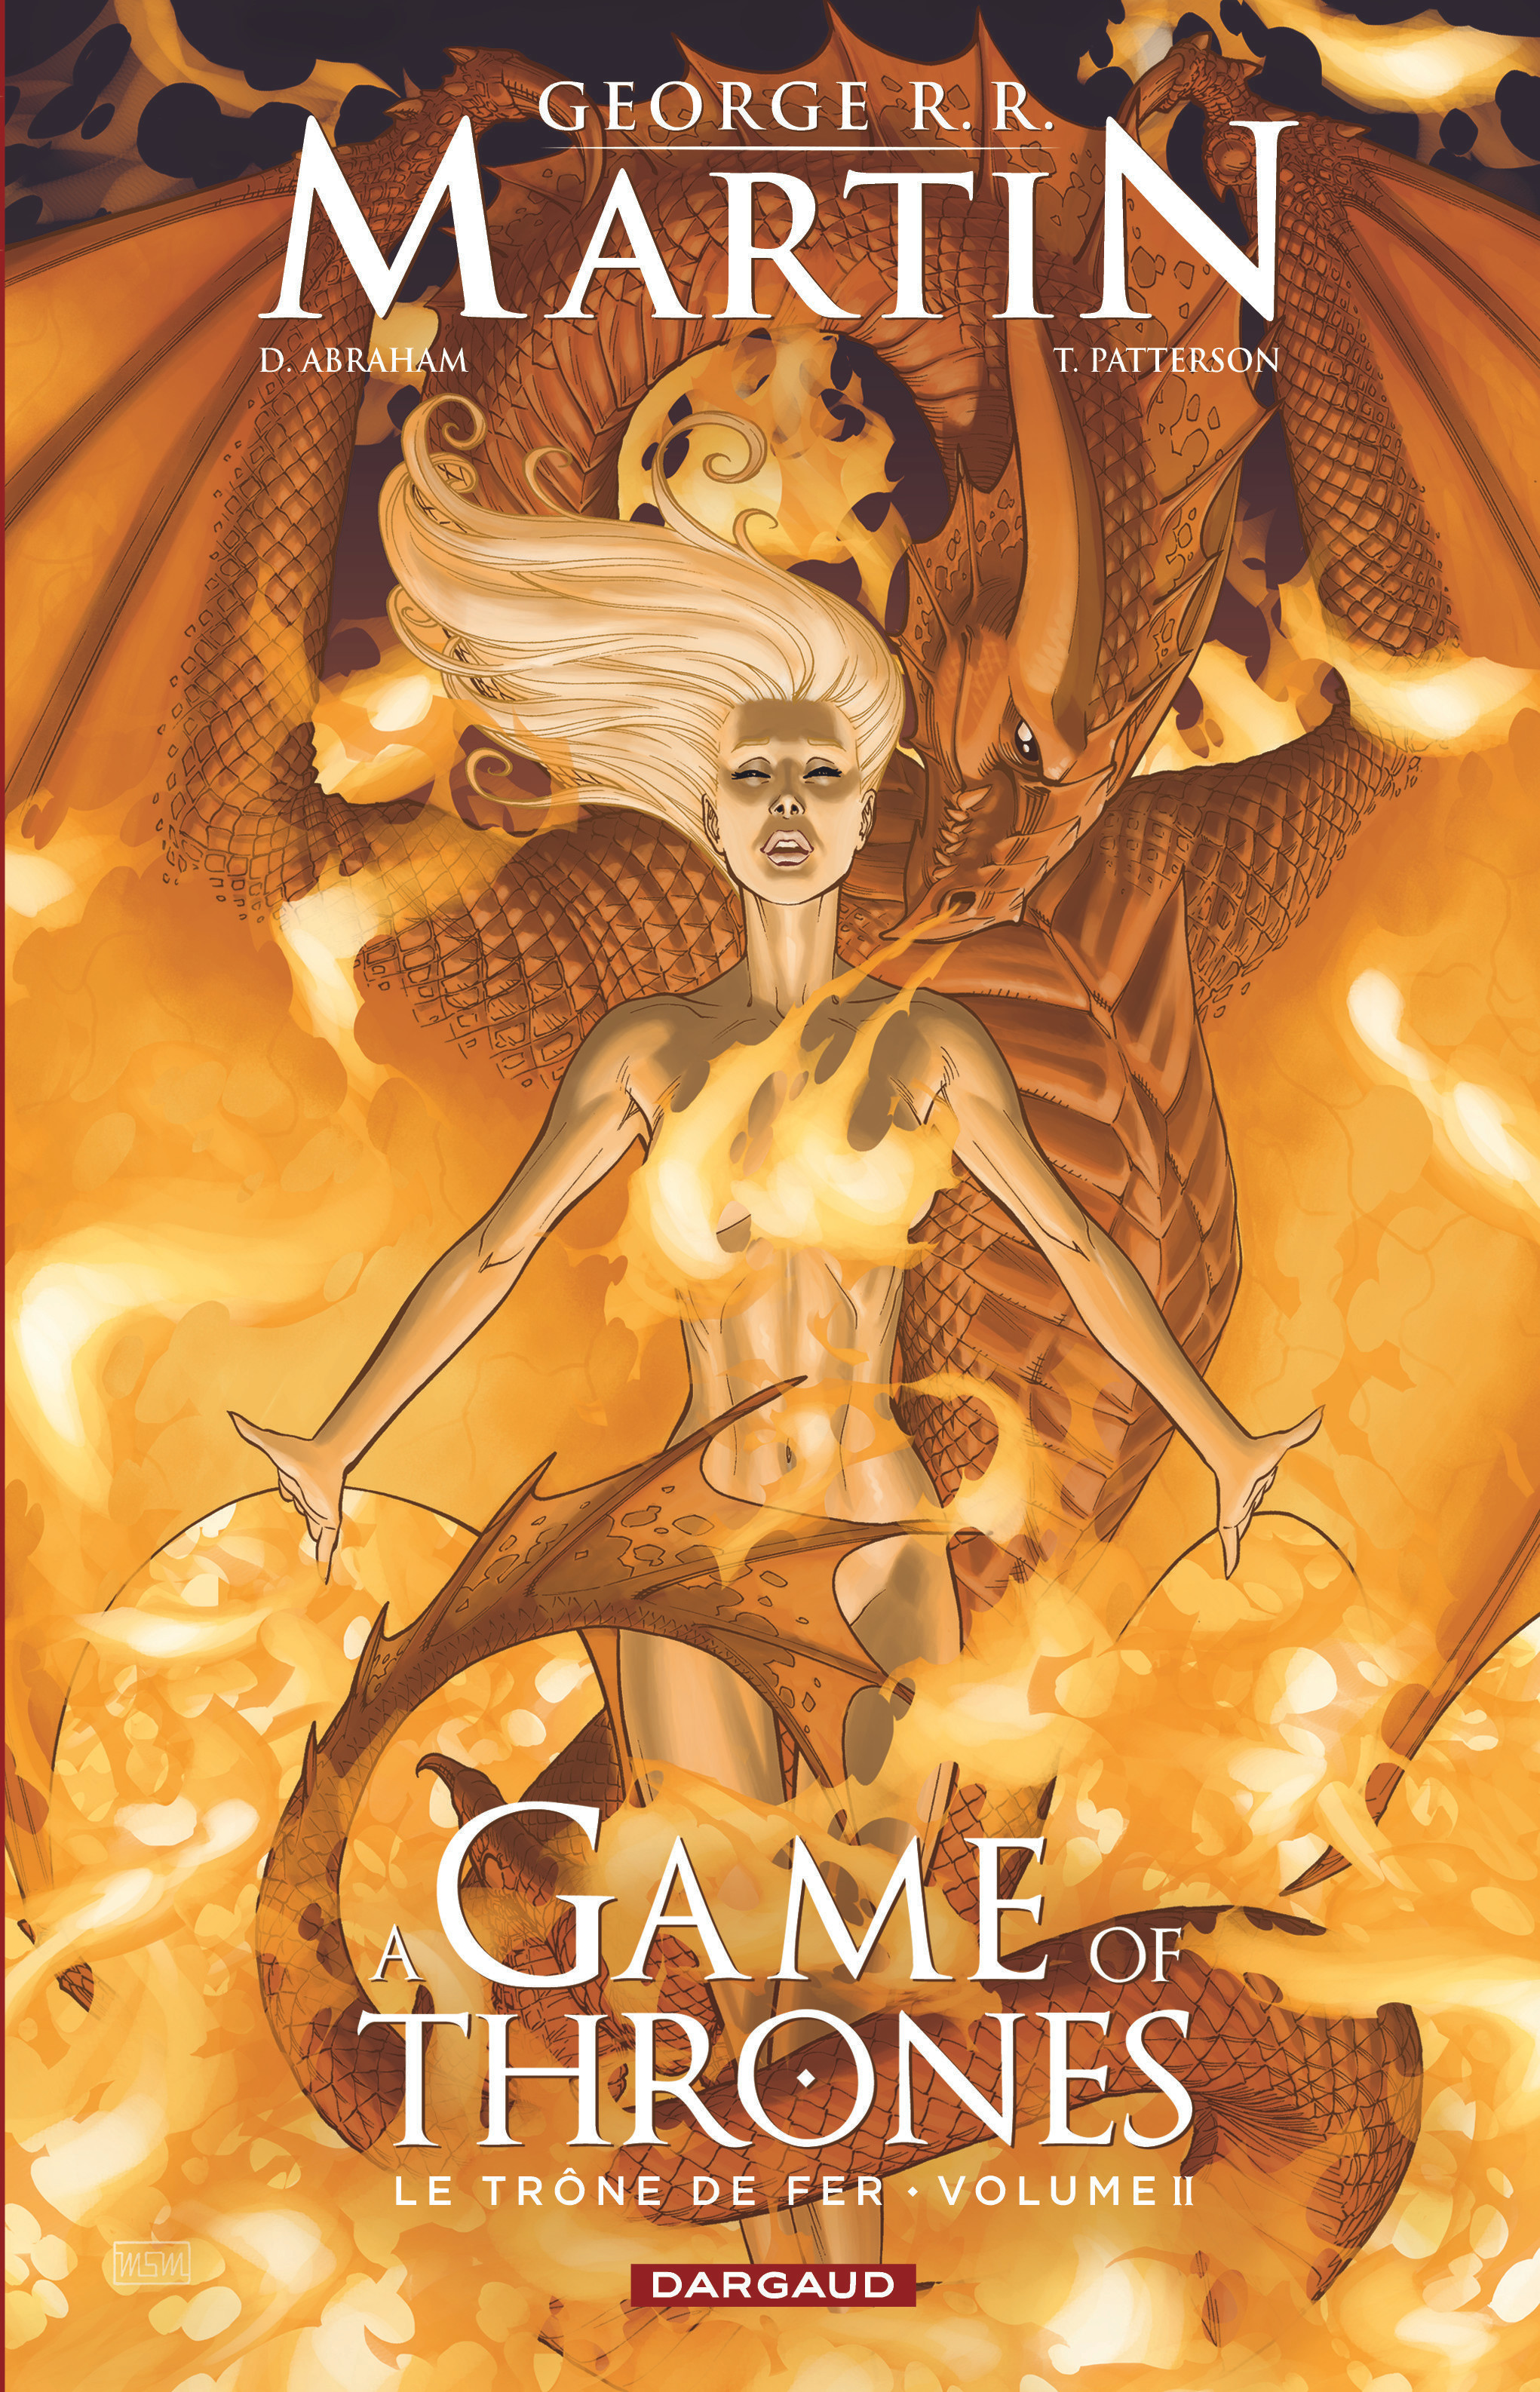 A GAME OF THRONES-LE TRONE FER T2 A GAME OF THRONES - LE TRONE DE FER (2/6)